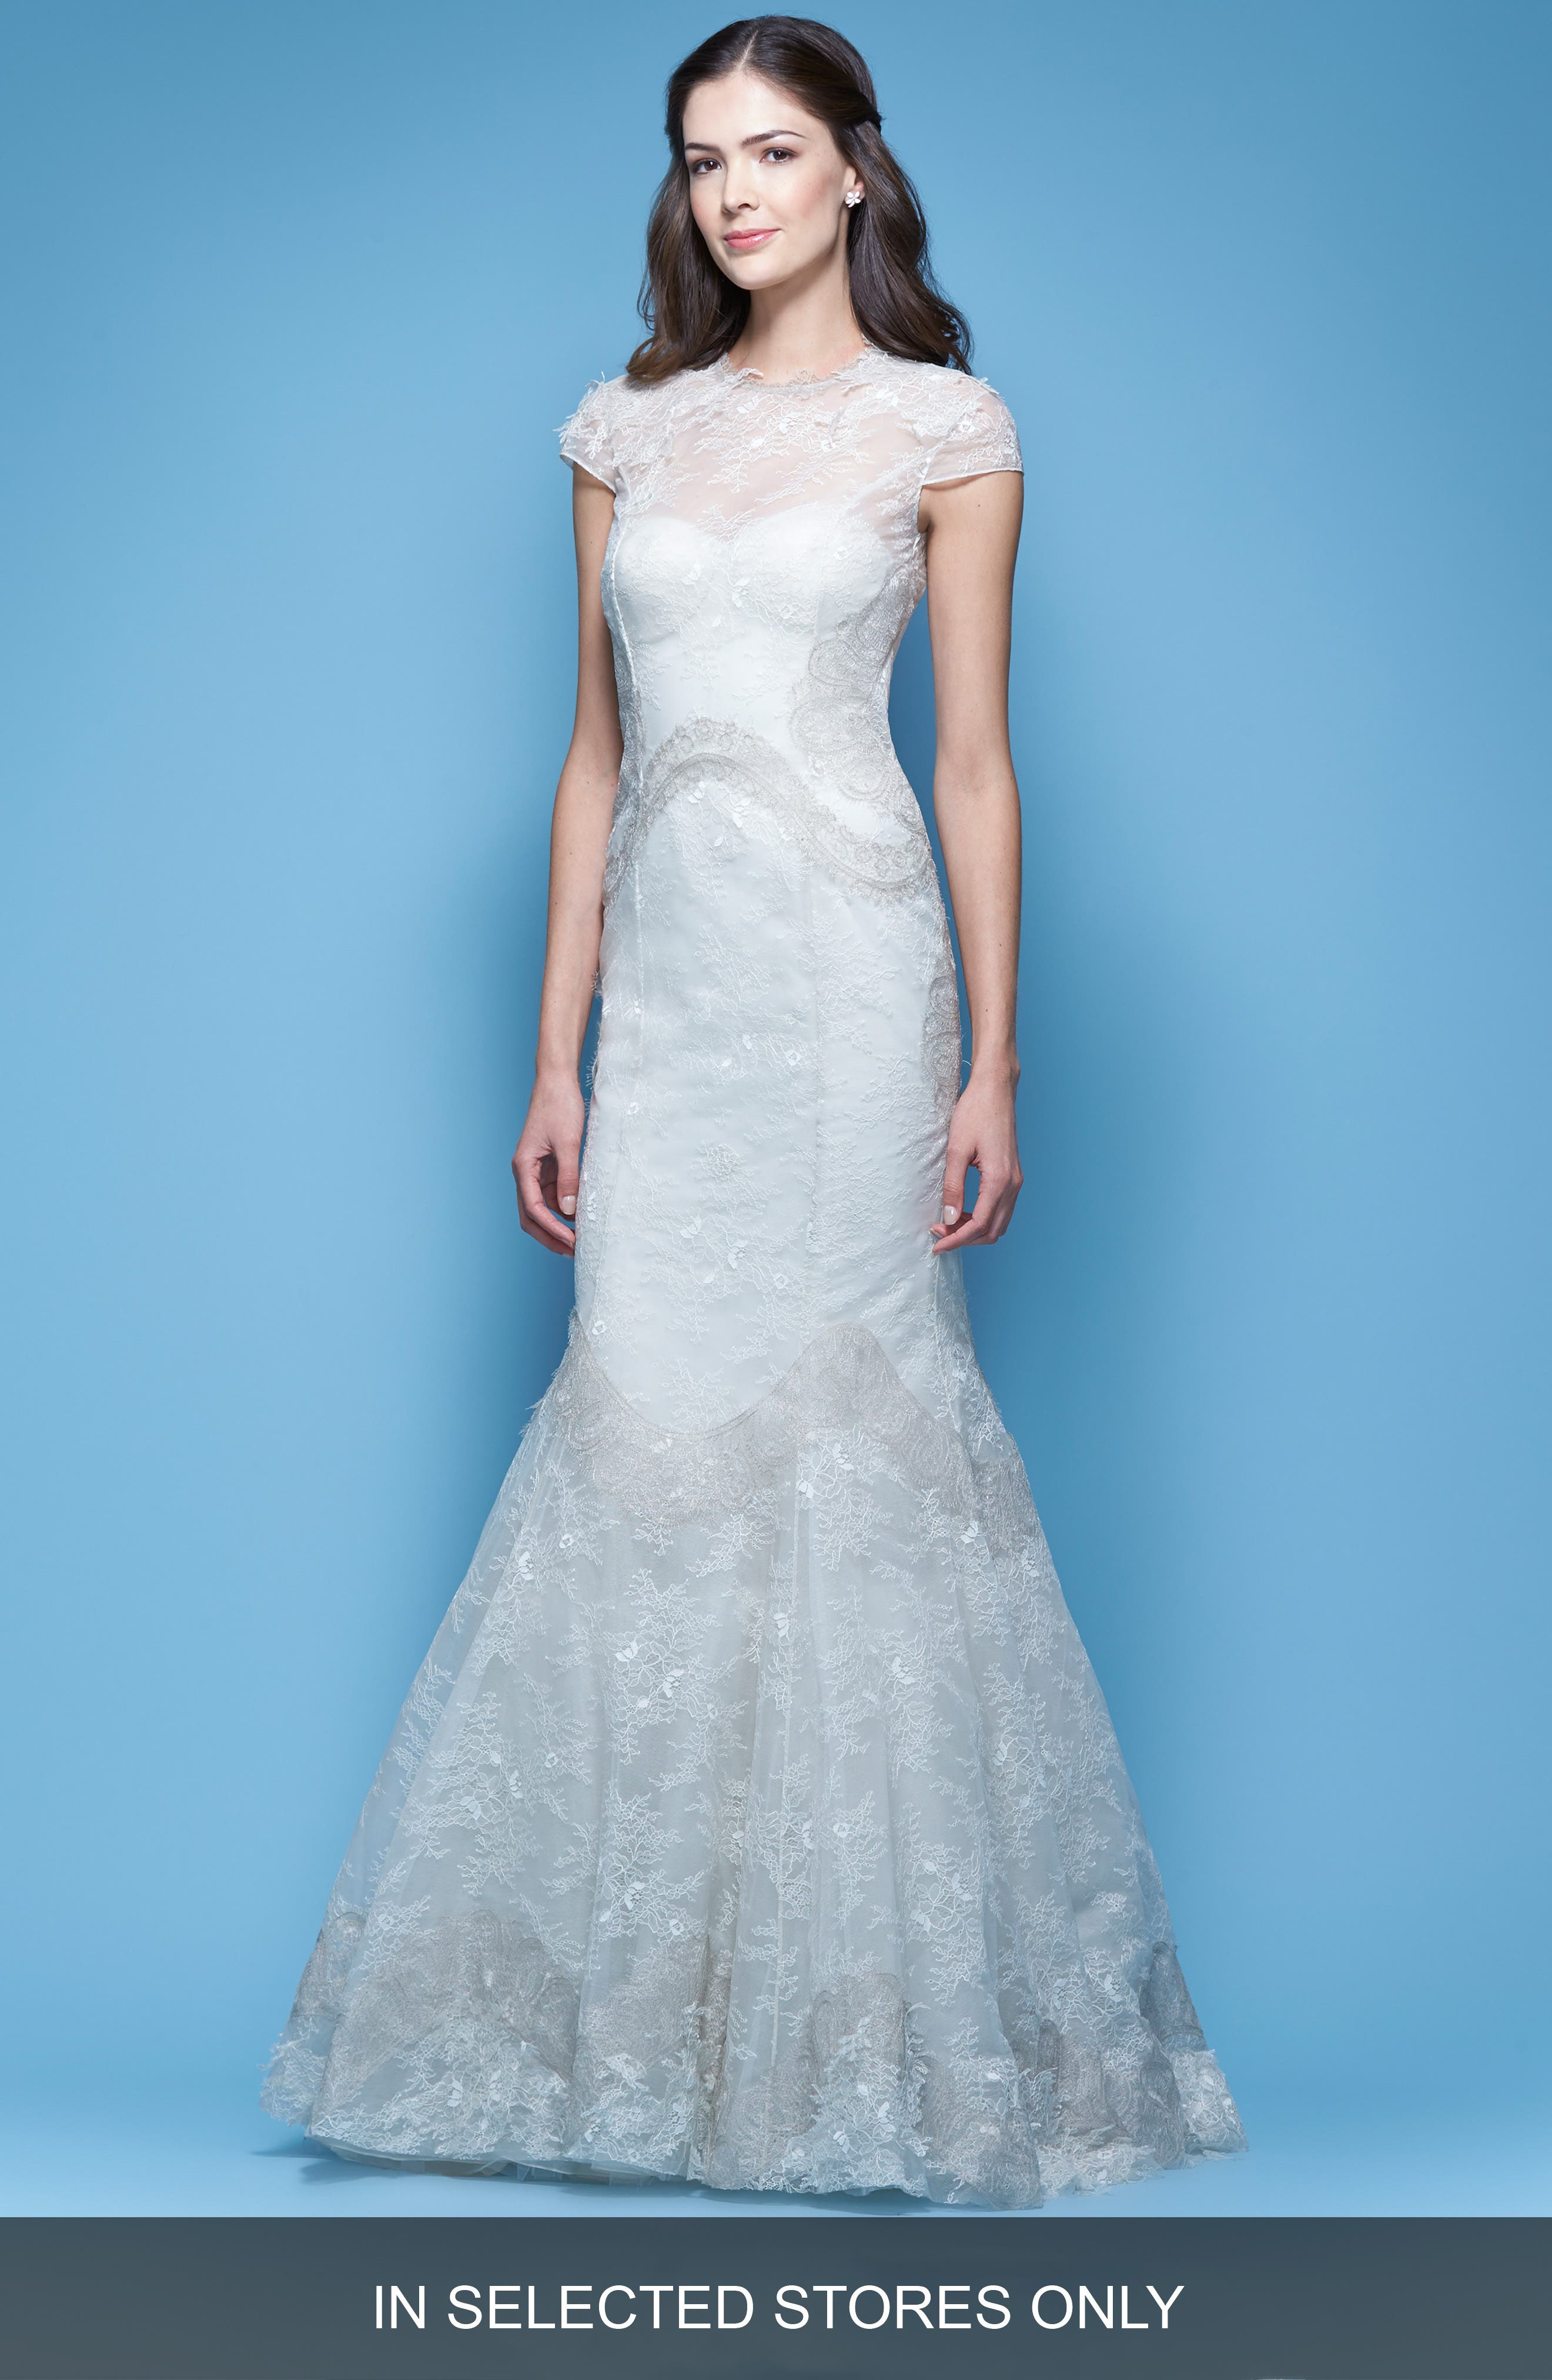 Carolina Herrera 'Jessica' Illusion Cap Sleeve Chantilly Lace Mermaid Gown (In Stores Only)